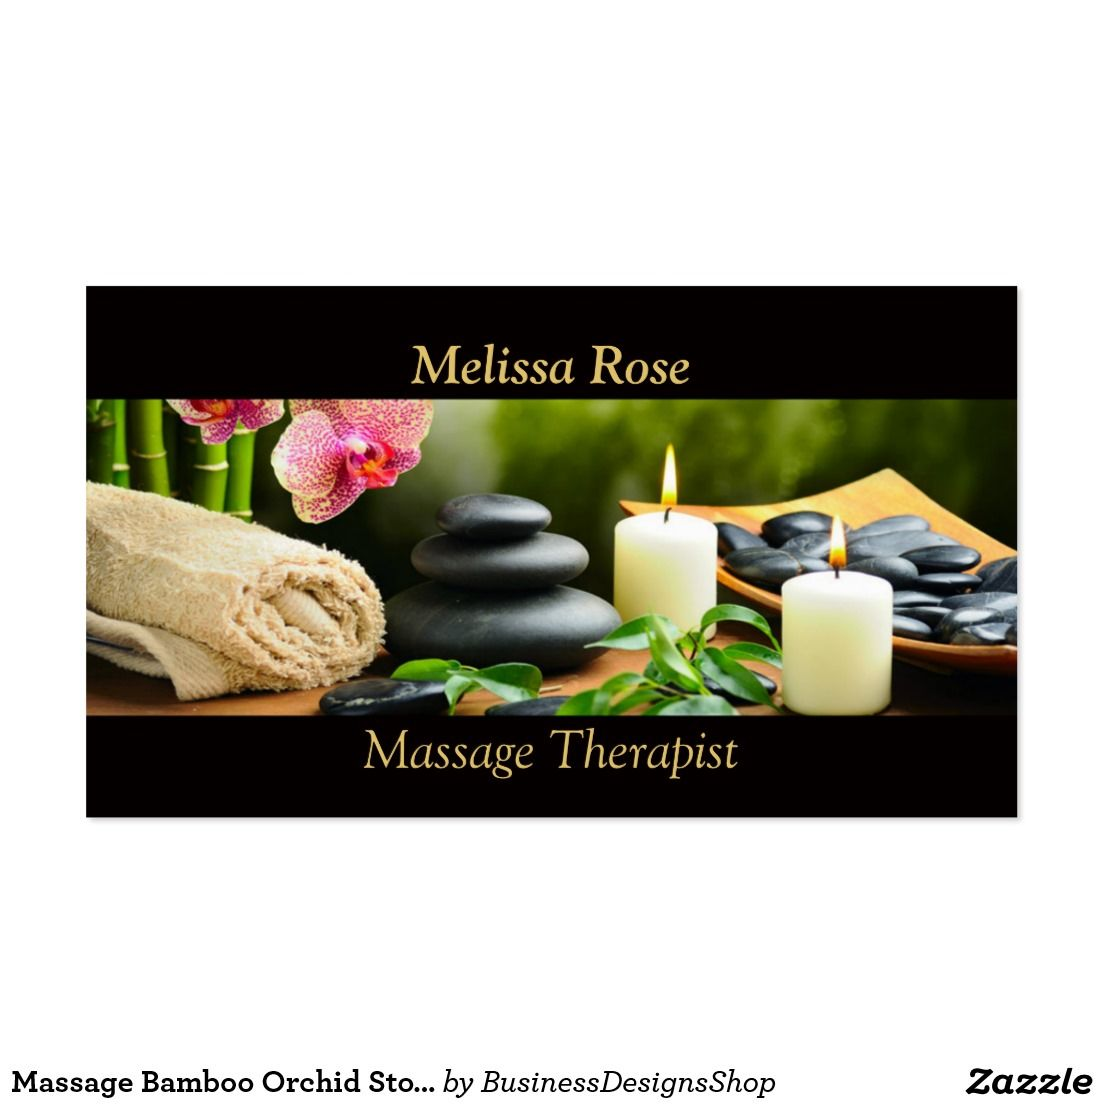 Massage bamboo orchid stones candle business card business massage bamboo orchid stones candle business card magicingreecefo Images